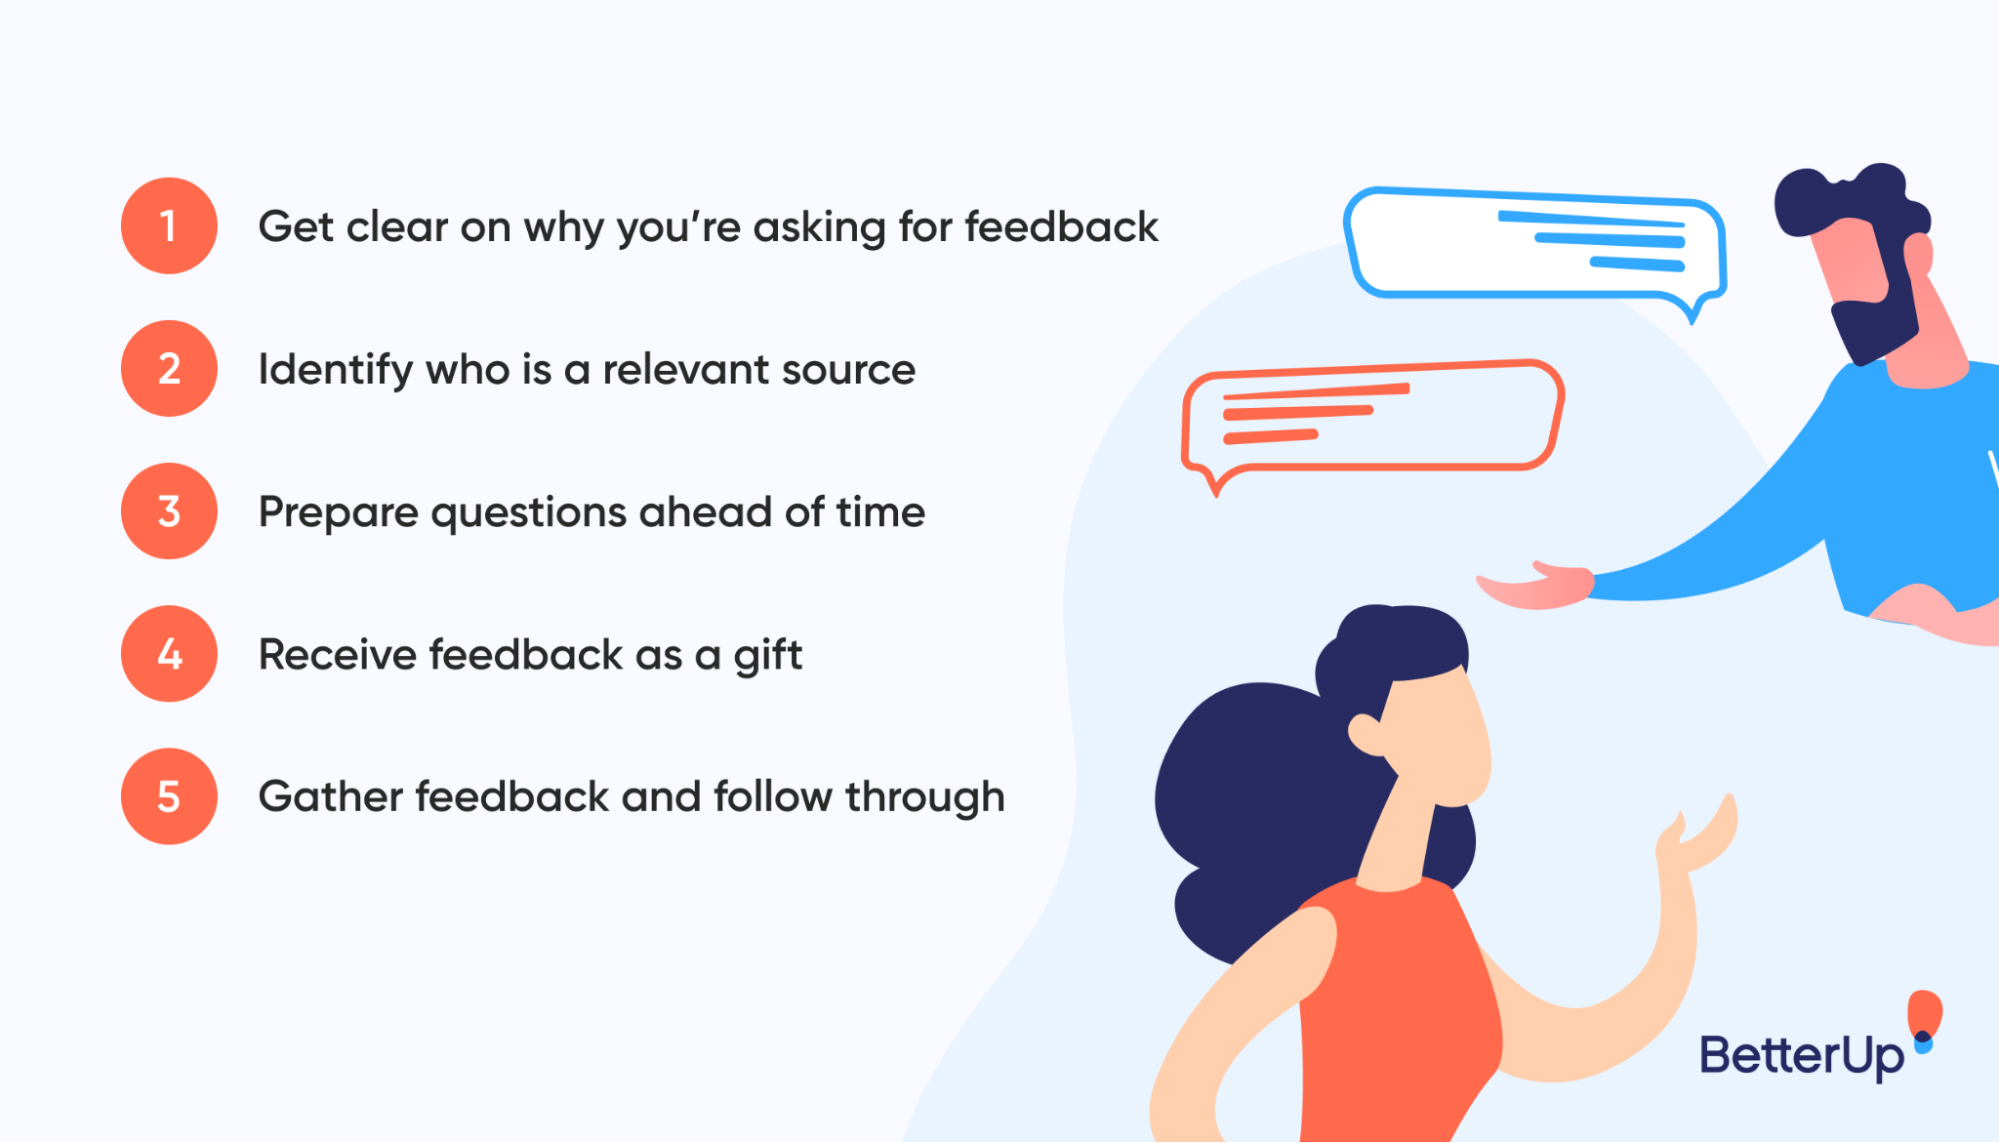 infographic-of-5-steps-for-asking-for-feedback-how-to-receive-feedback